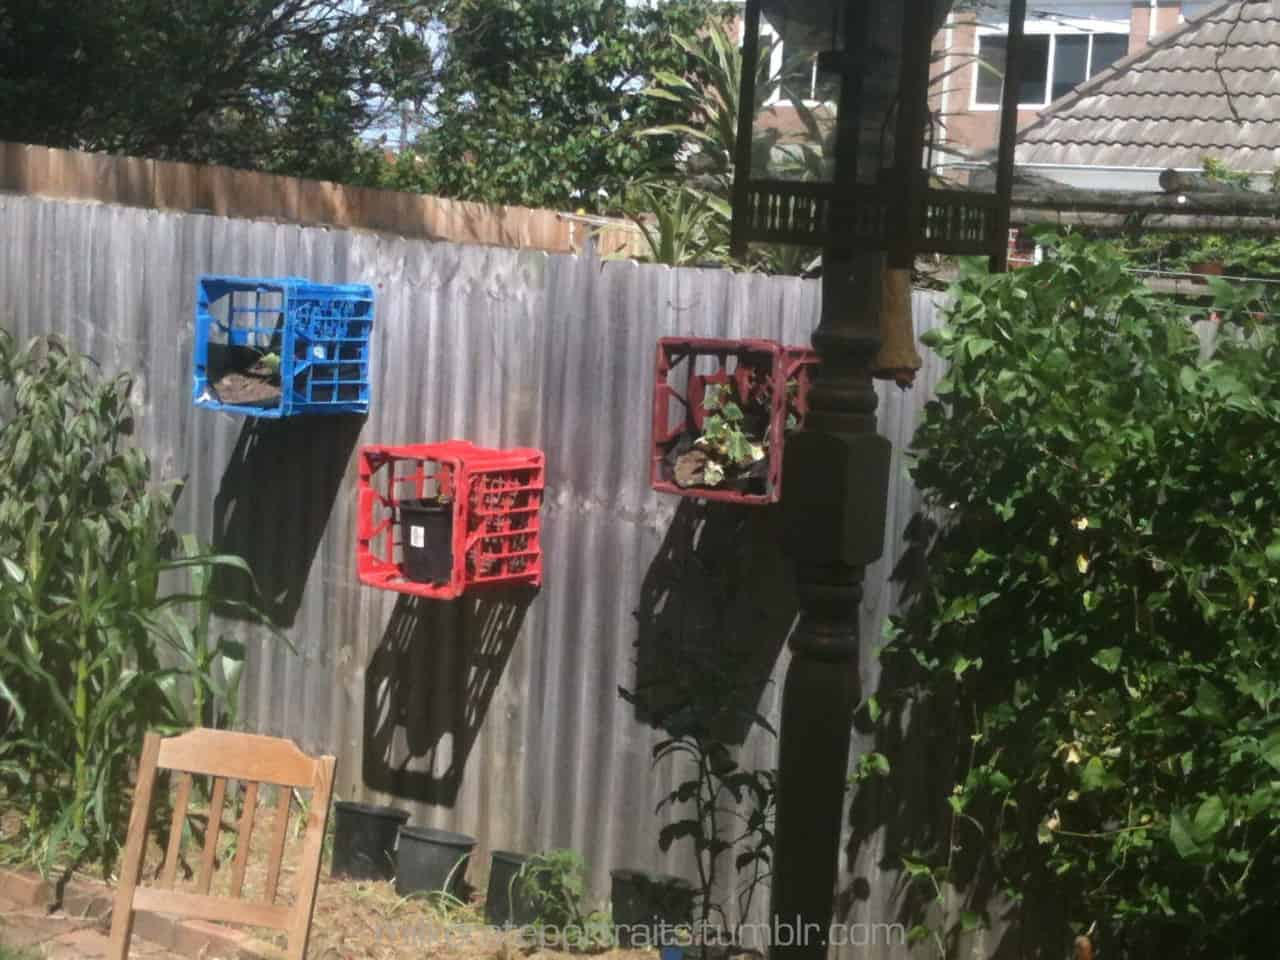 Plant holder milk crates